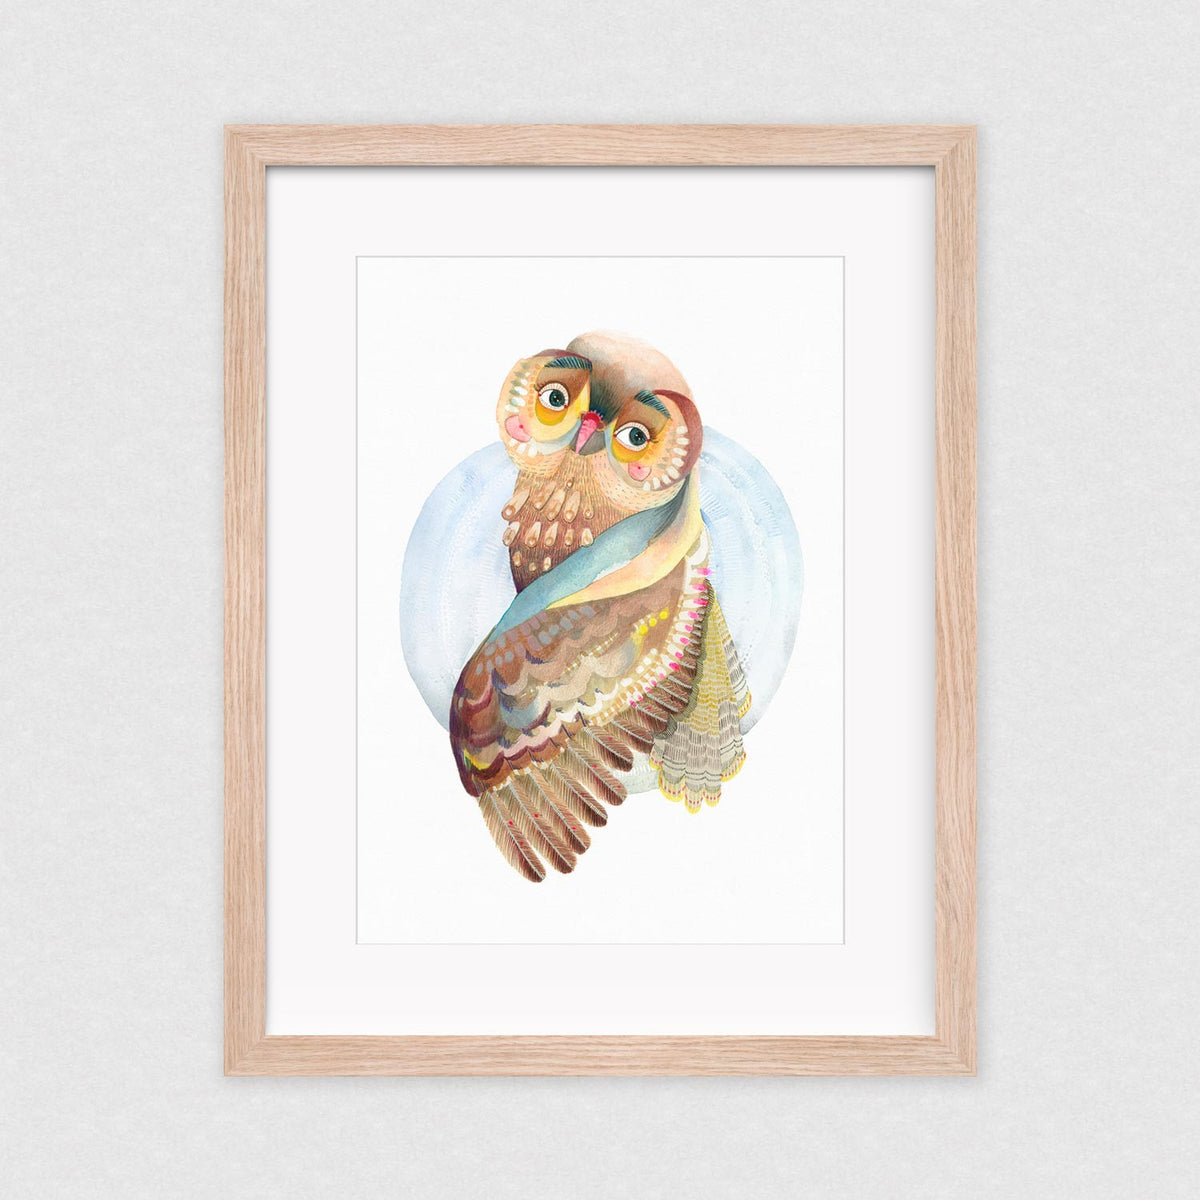 Total Flirt - Framed Limited Edition Print | by Natalie Martin - Framed Prints - Throw Some Seeds